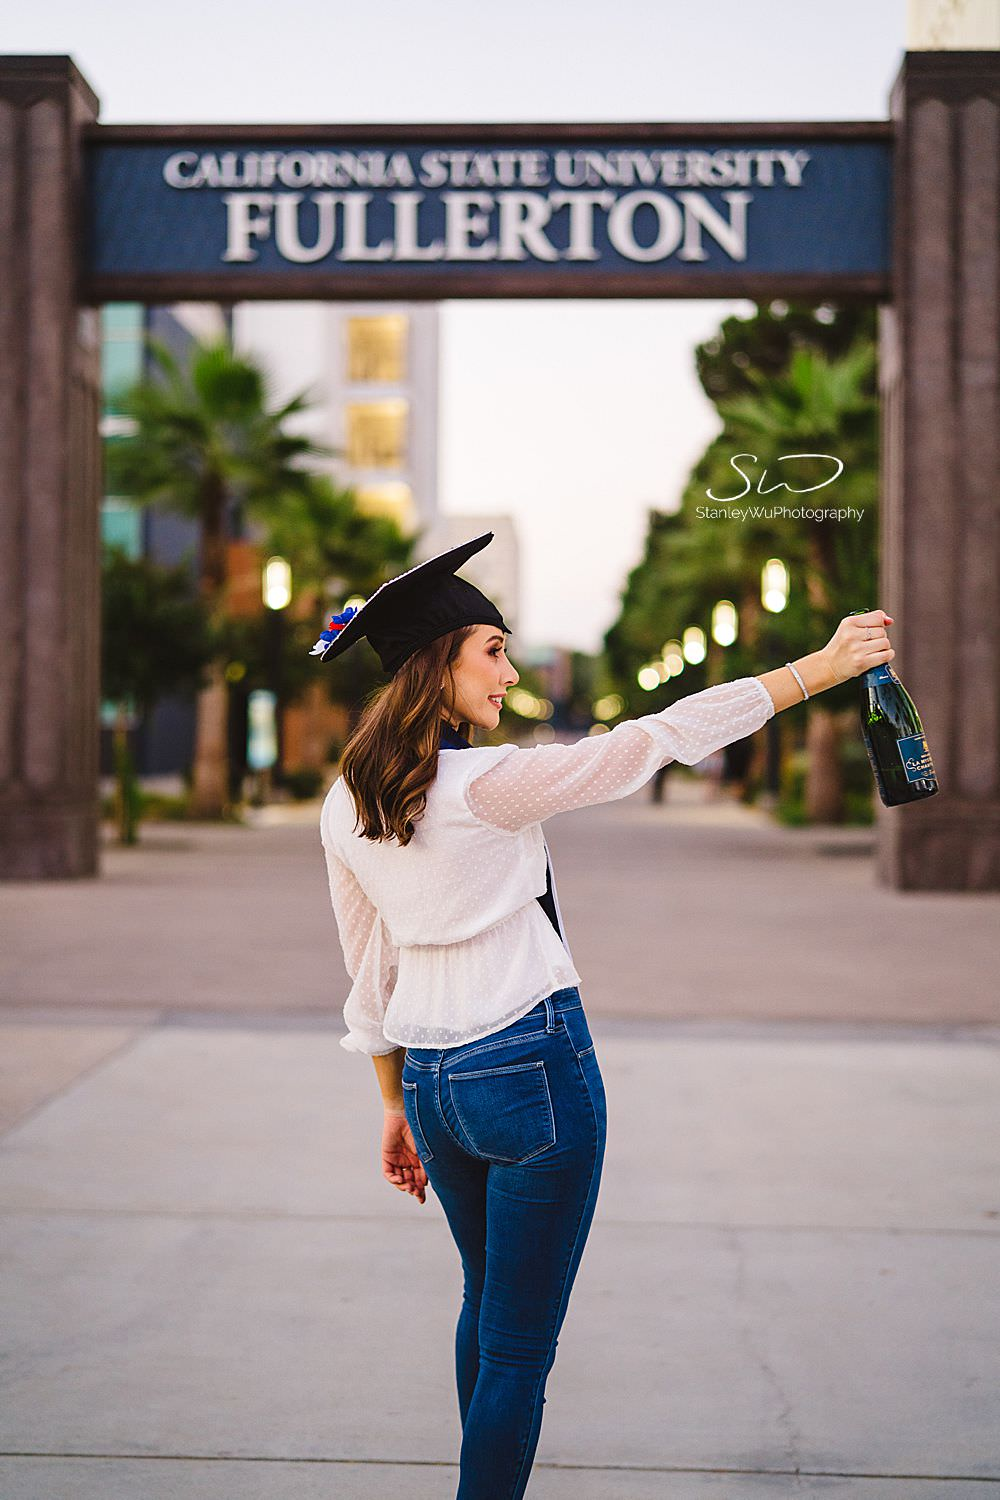 csu fullerton graduation photos popping champagne in front of the sign